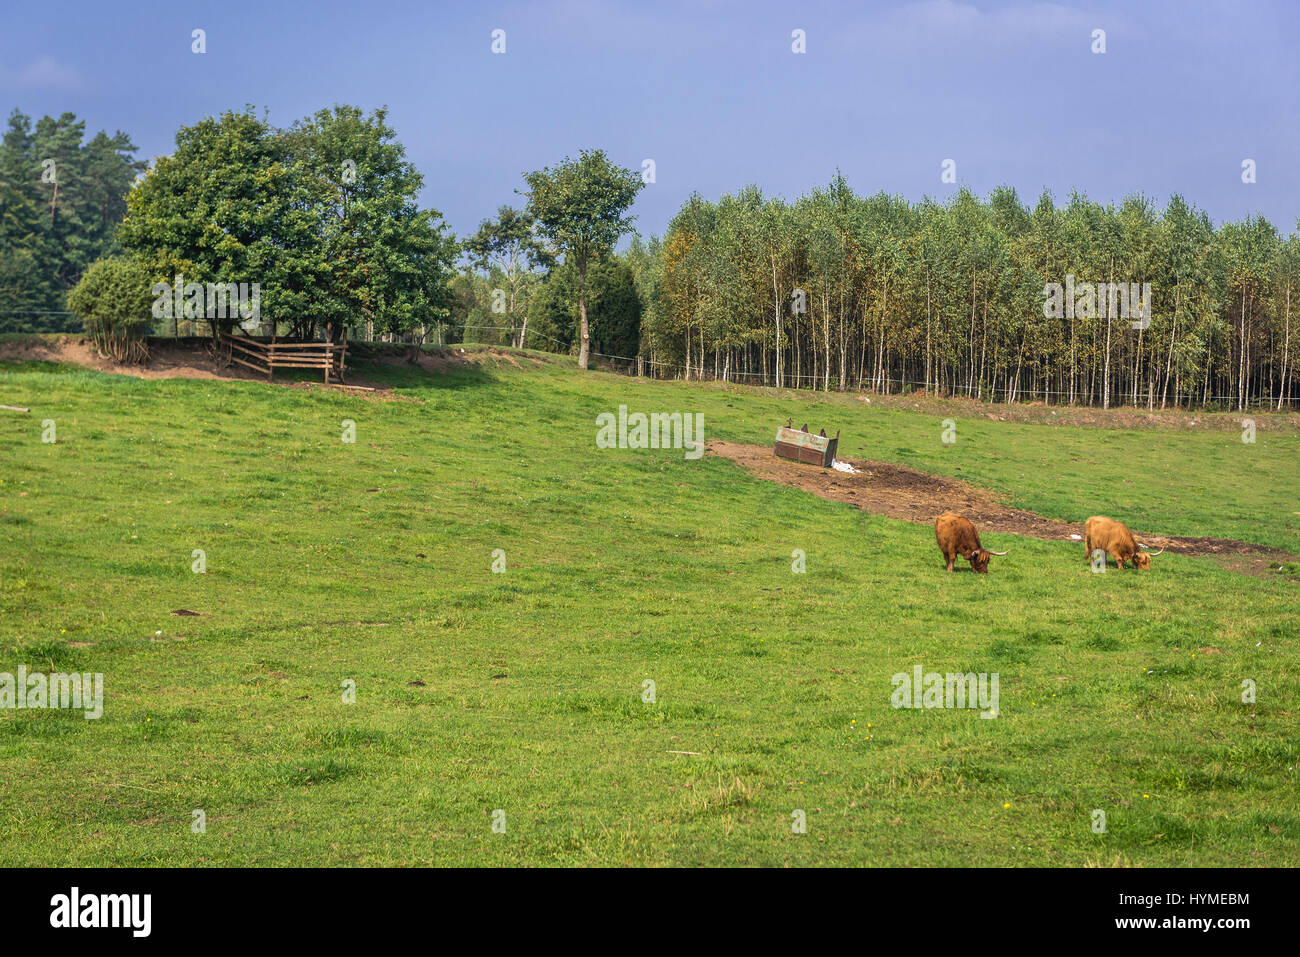 Scottish highland cattle on a pastureland in Dziemiany commune, Kashubia region of Pomeranian Voivodeship in Poland - Stock Image